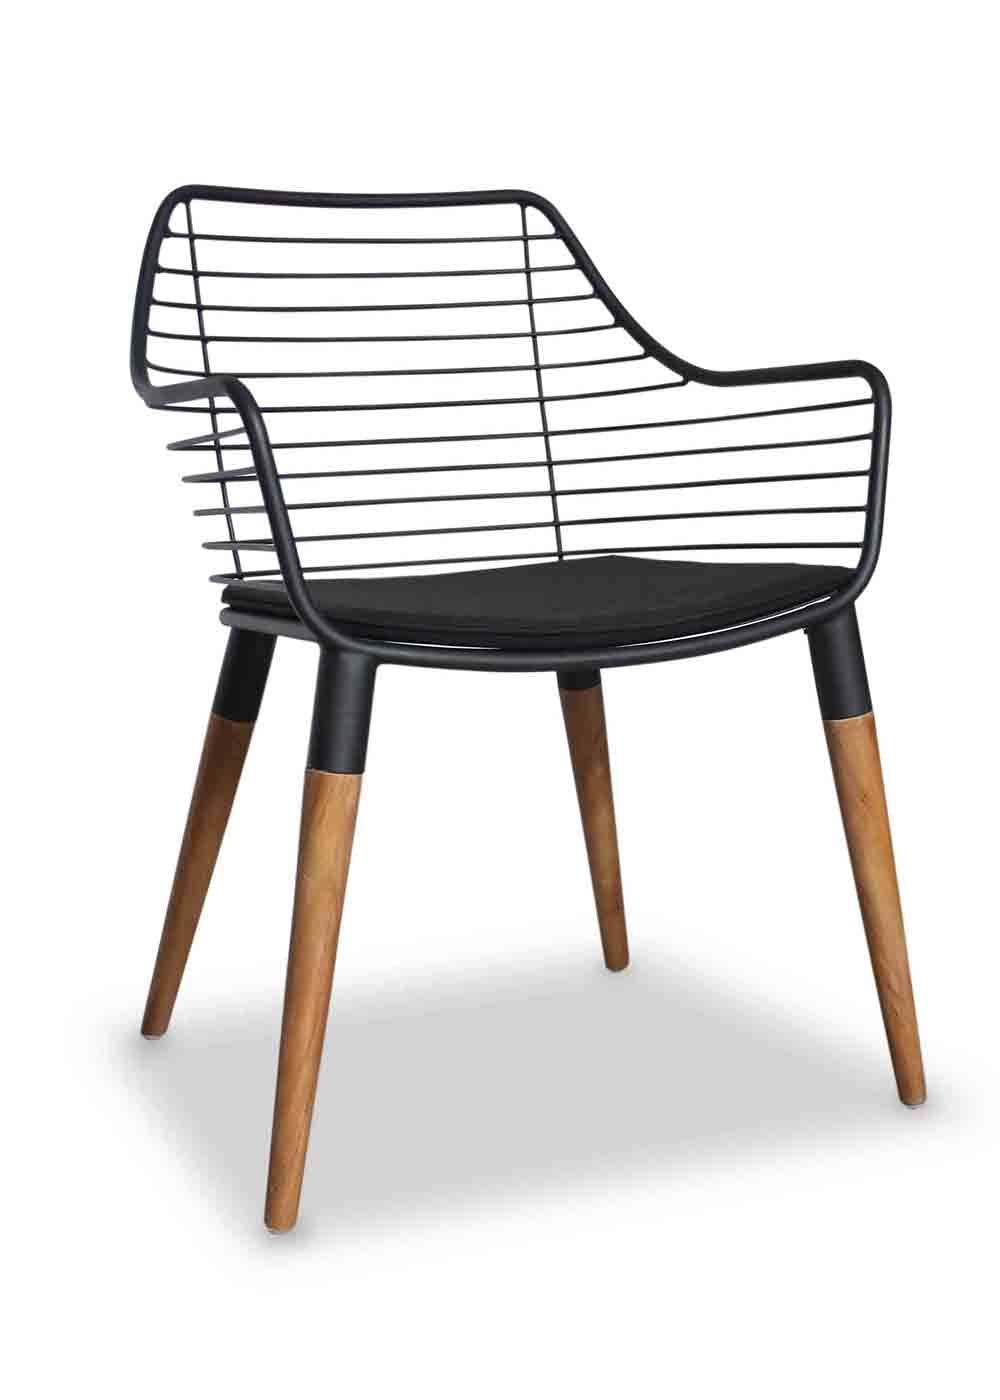 Picture Of The Emerson Arm Chair (View 17 of 20)